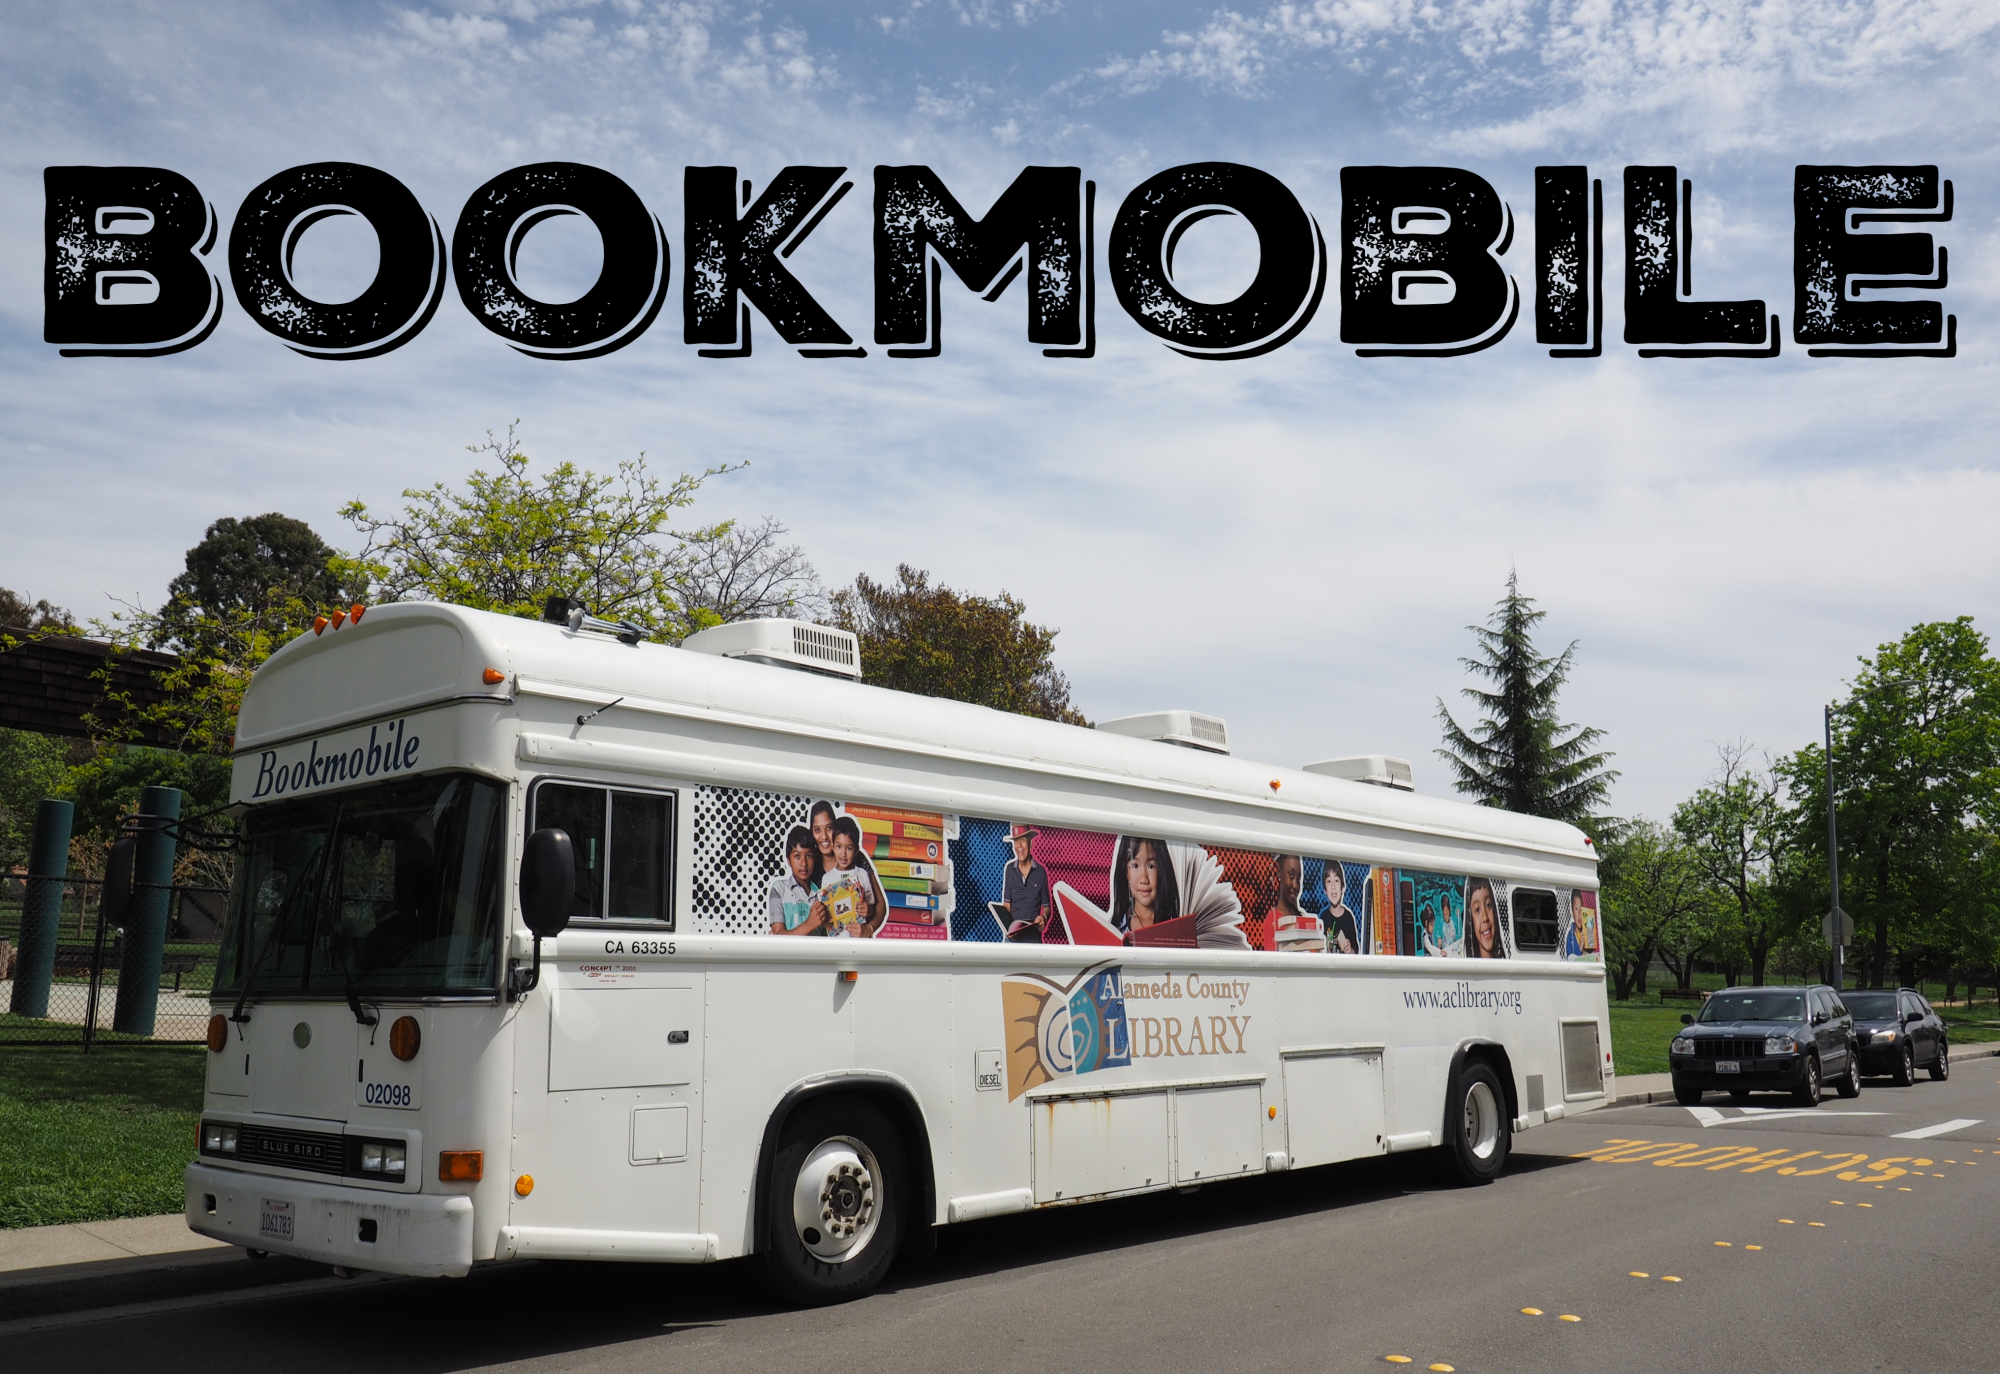 Glenmoor School - bookmobile stop